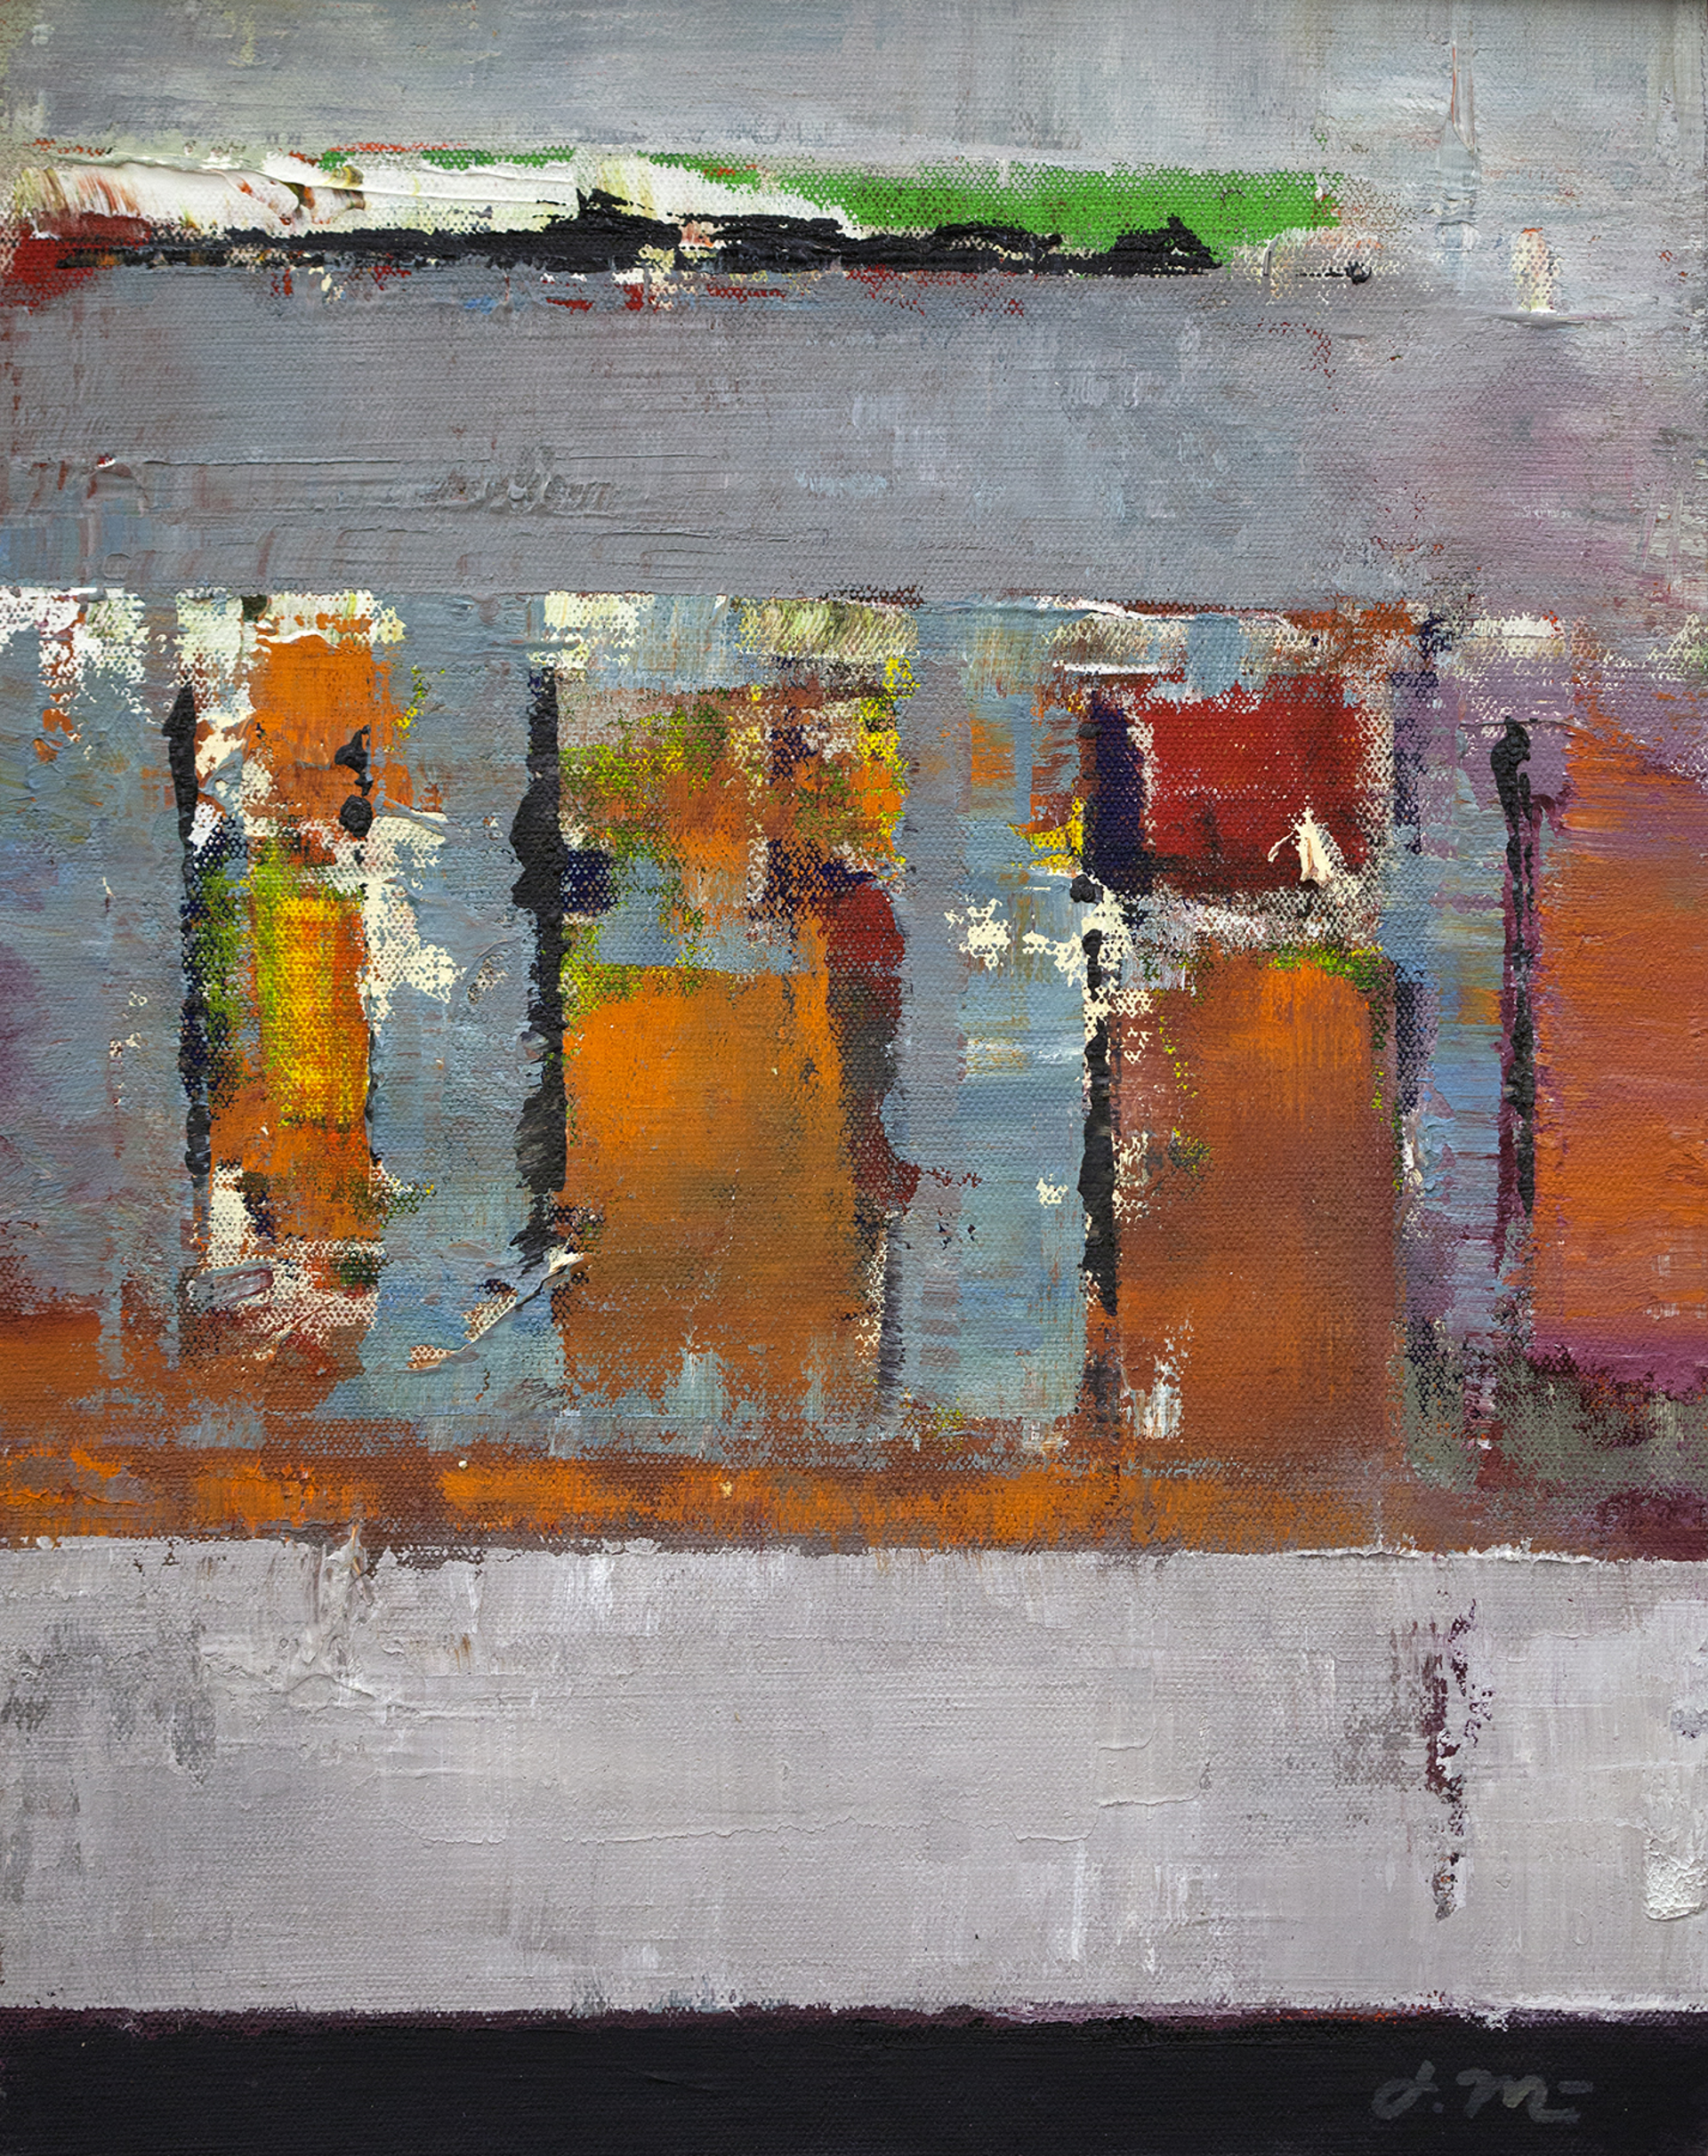 Floating Structure by John McCaw